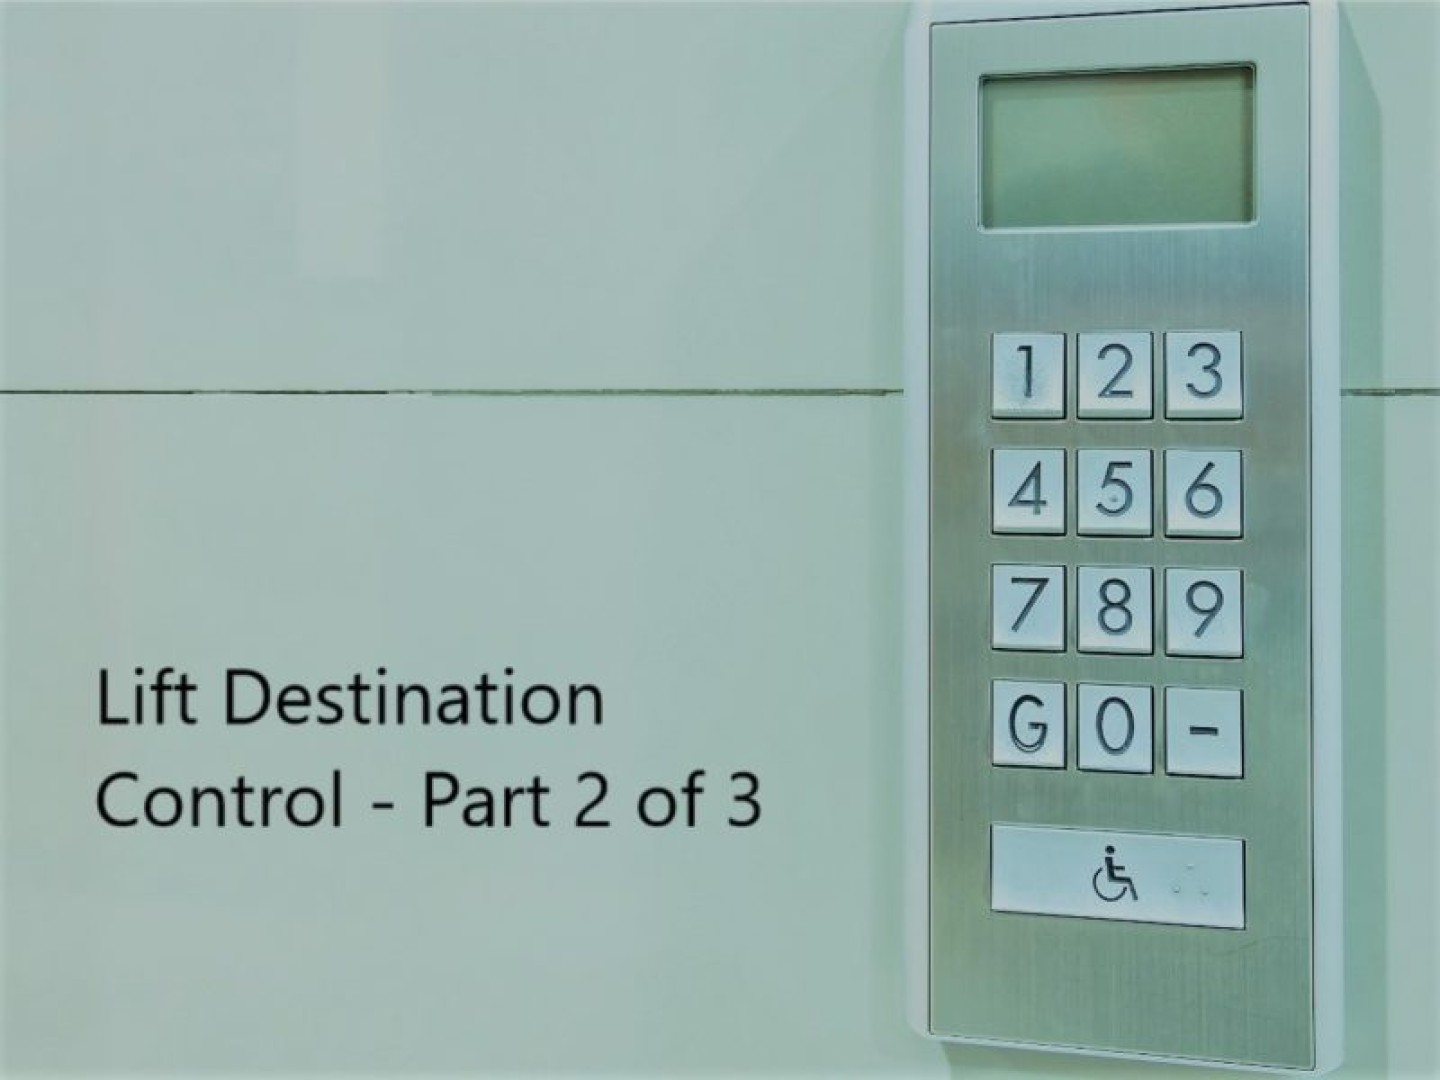 Lift Destination Control Consultant Part 2